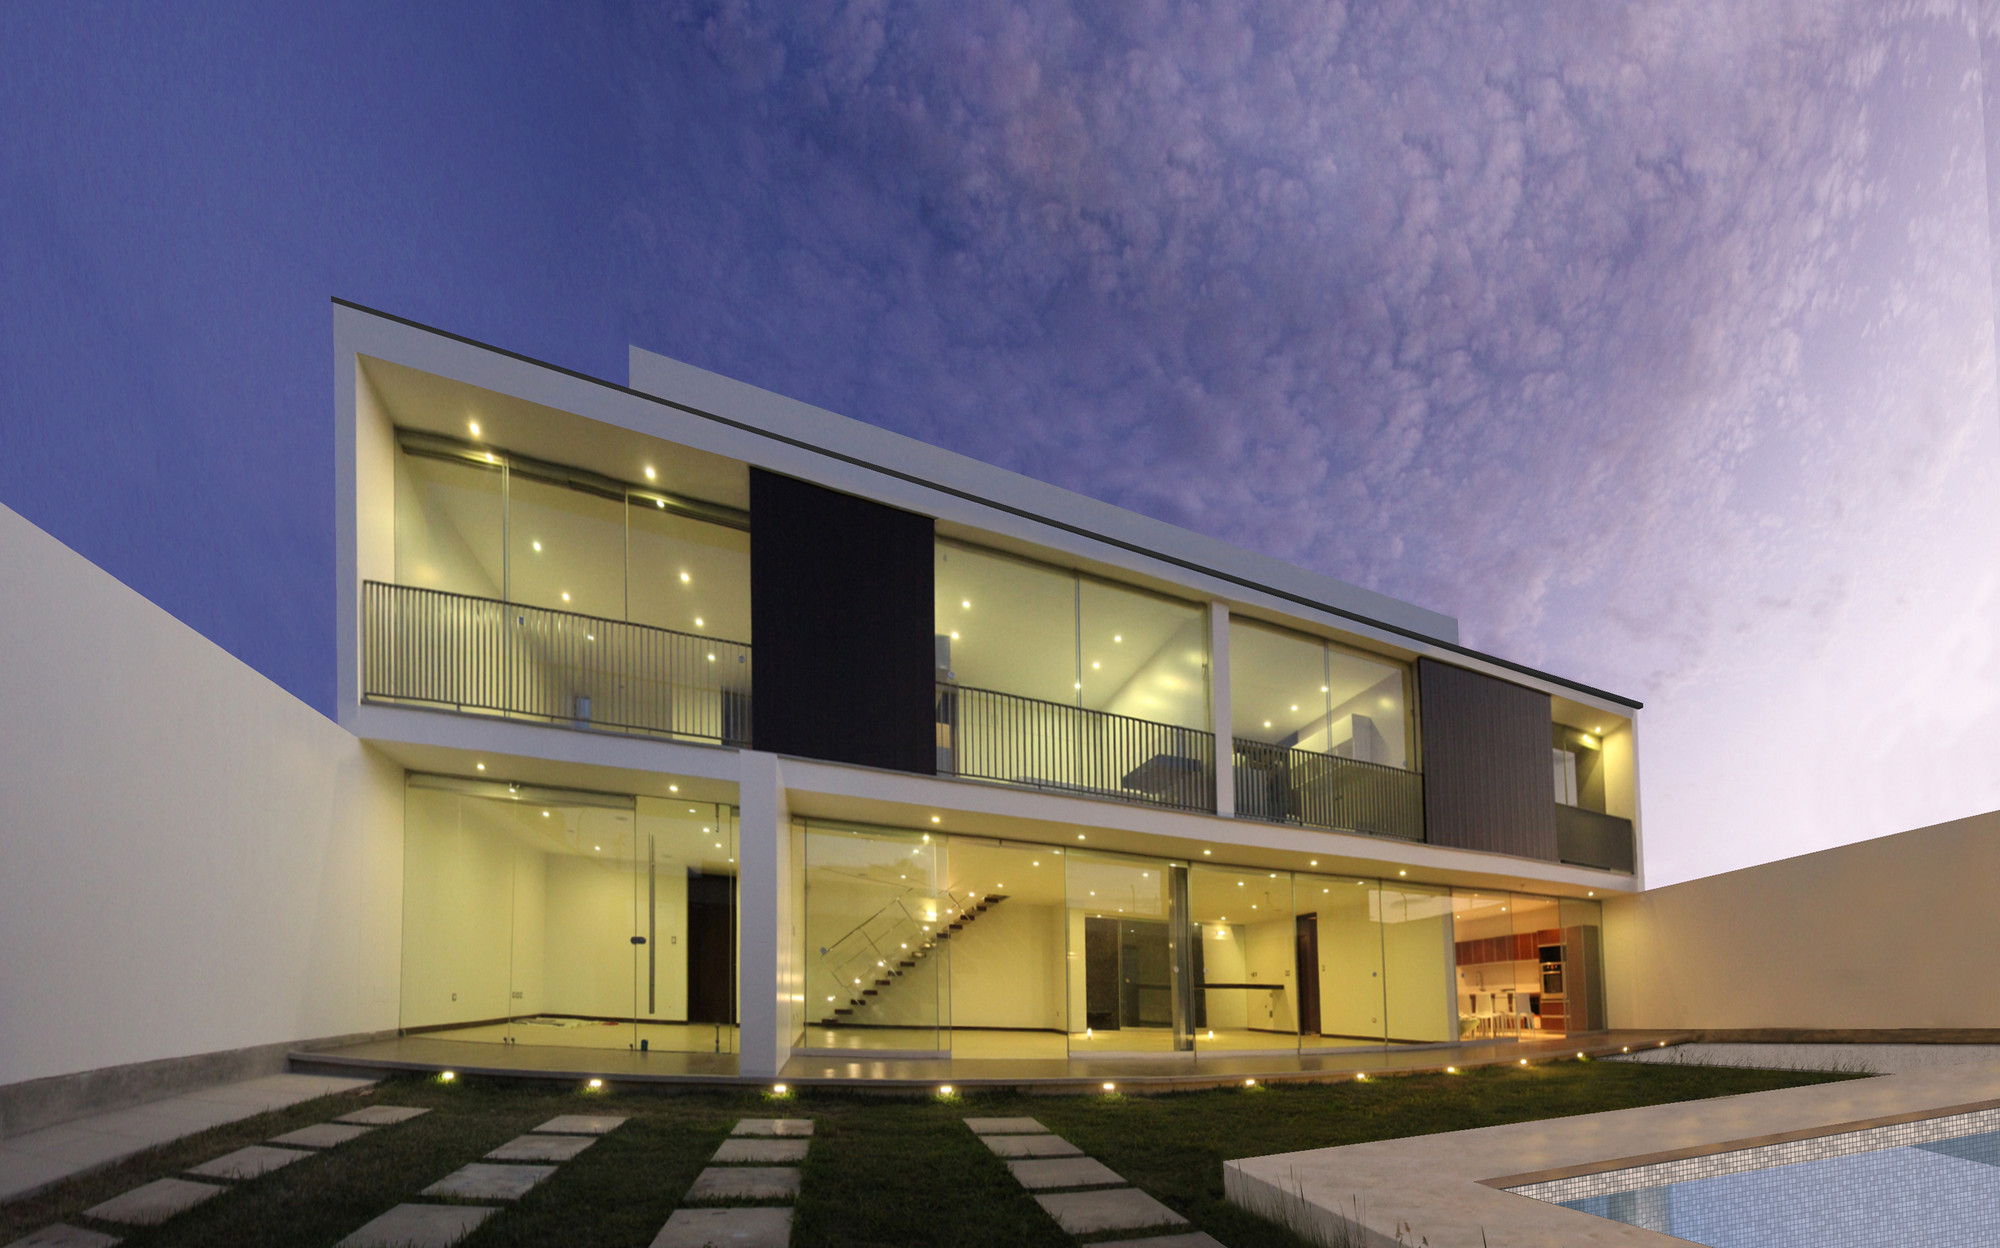 LF House / Itara Arquitectos, Courtesy of Itara Arquitectos